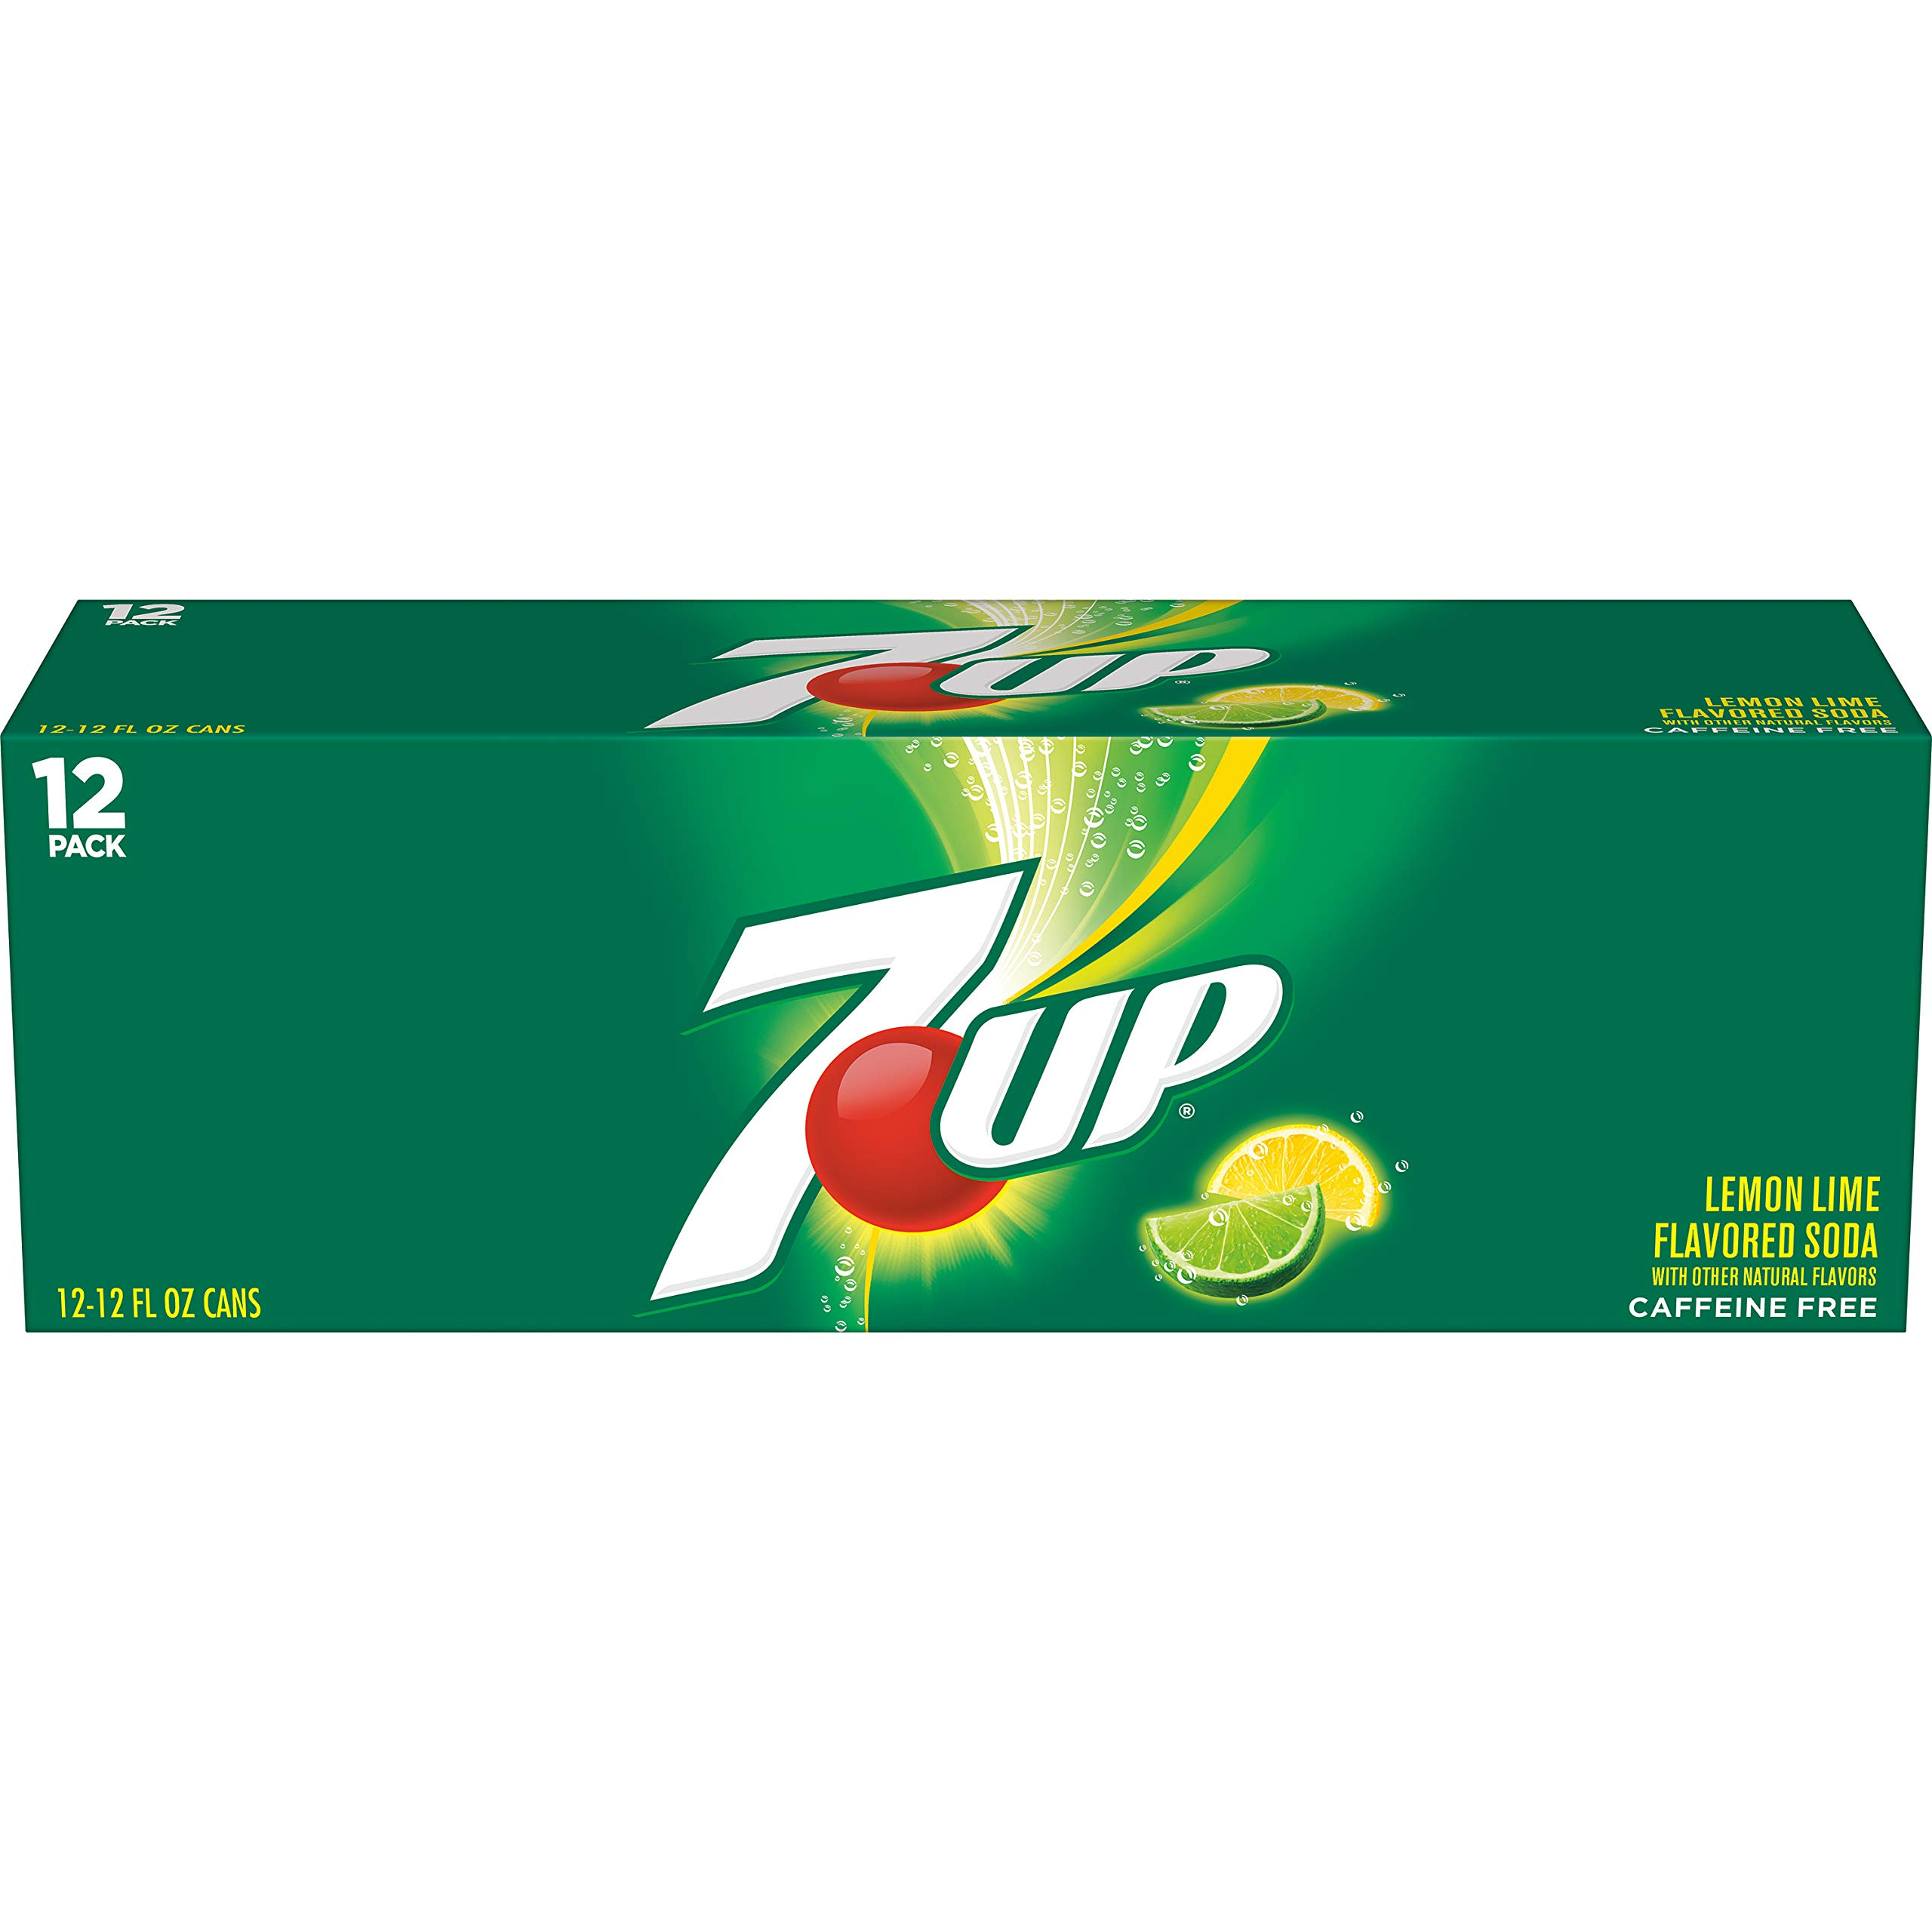 7UP Lemon Lime Soda, Naturally Flavored and Caffeine Free, 12 Fl Oz Cans (pack of 12)